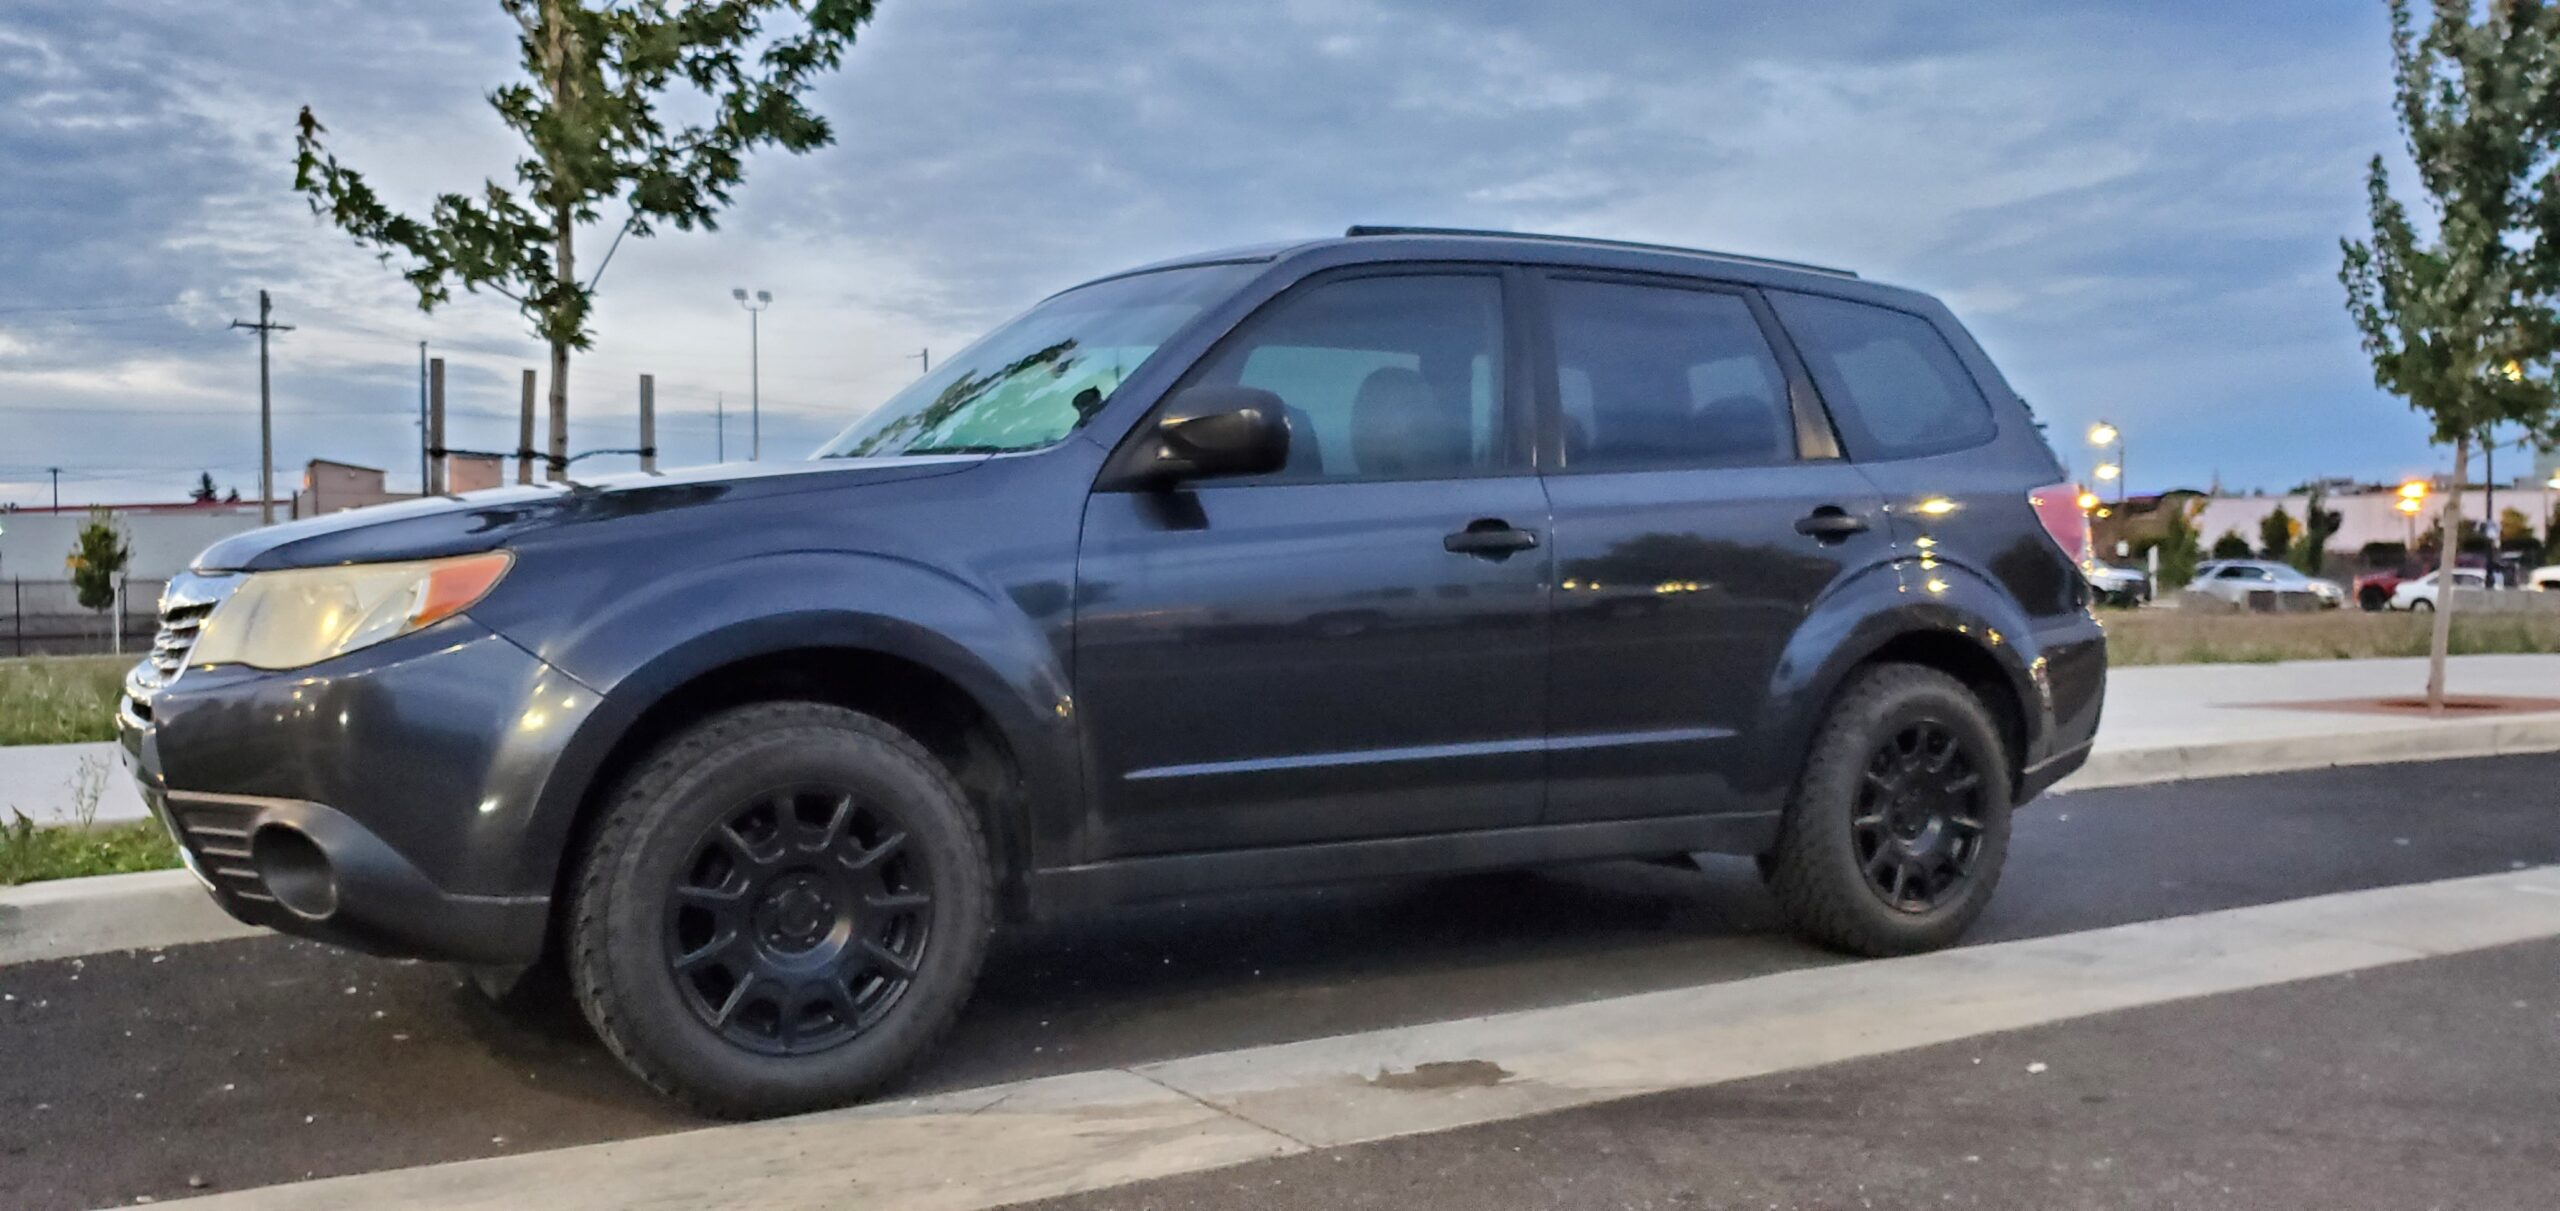 Best Lift Kits For 09-13 Subaru Forester | Our Top Picks